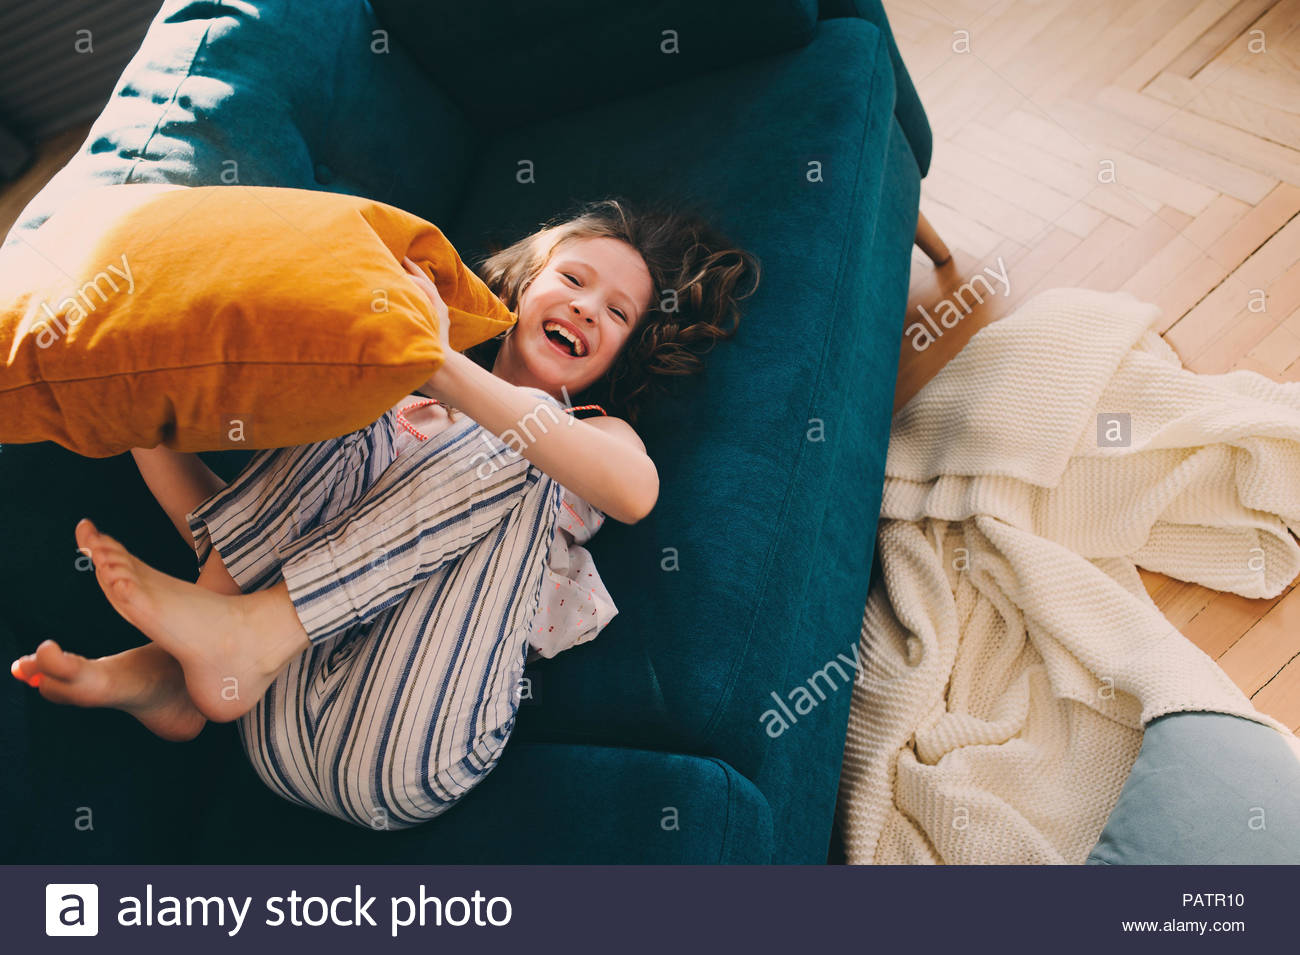 A young girl having fun at home - Stock Image